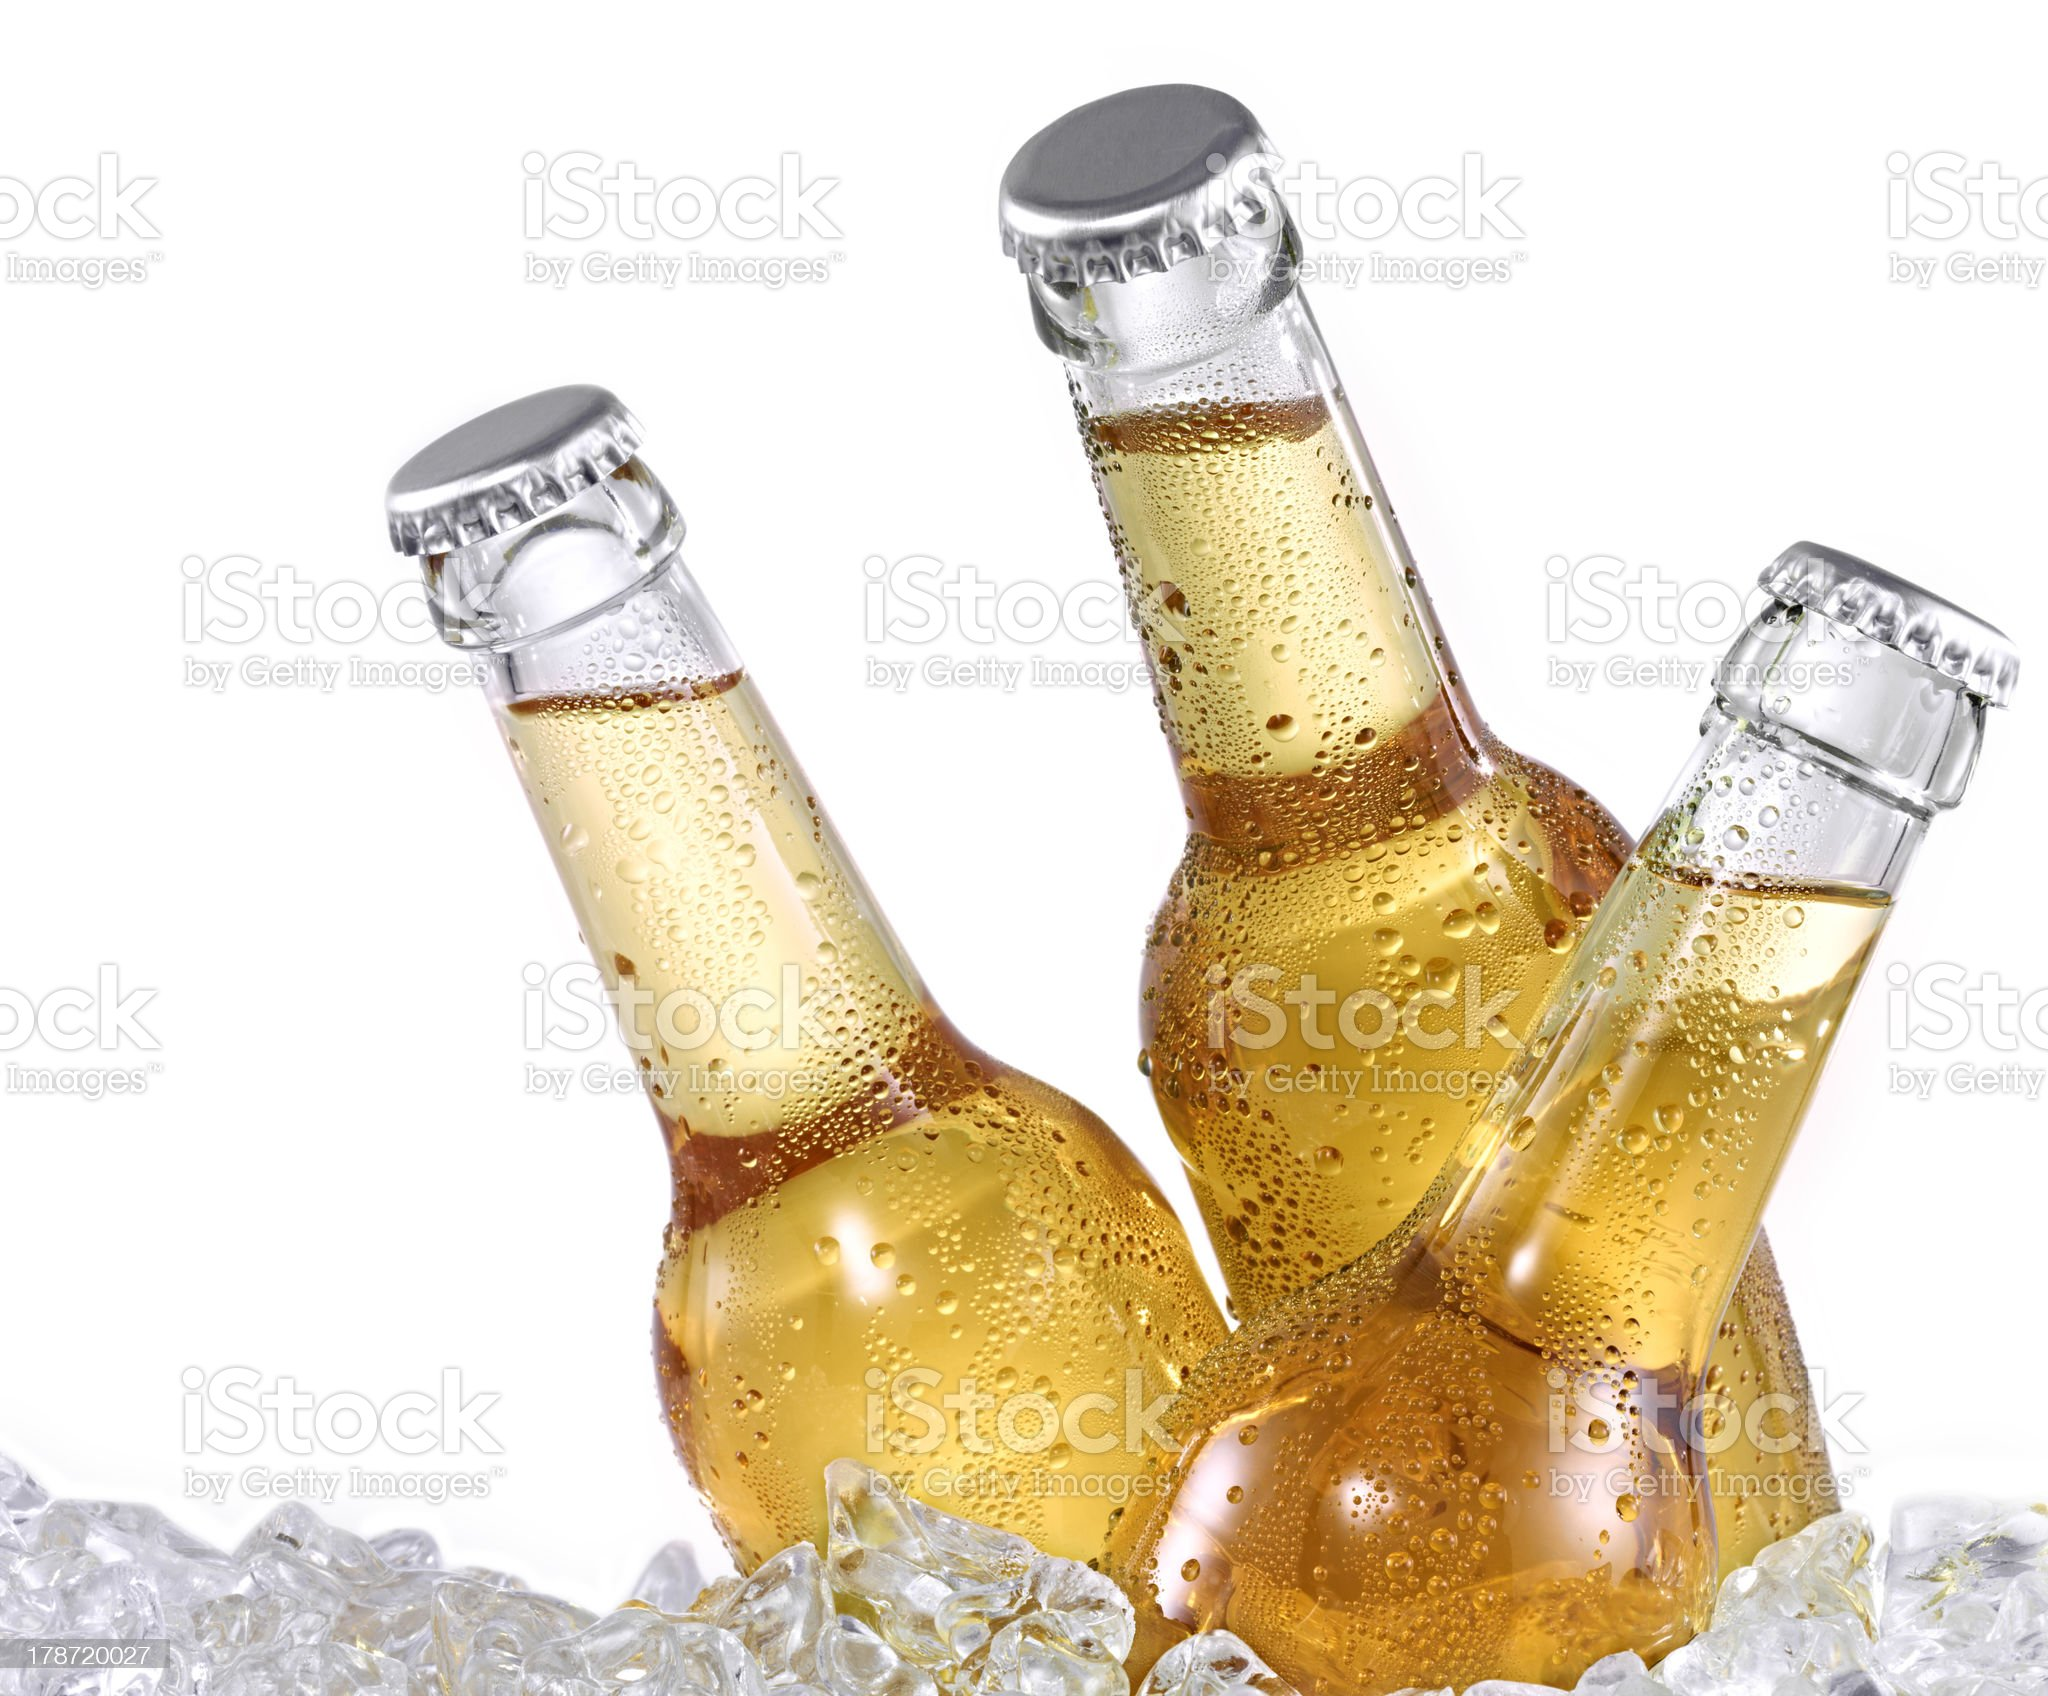 Three dewy beer bottles on ice royalty-free stock photo